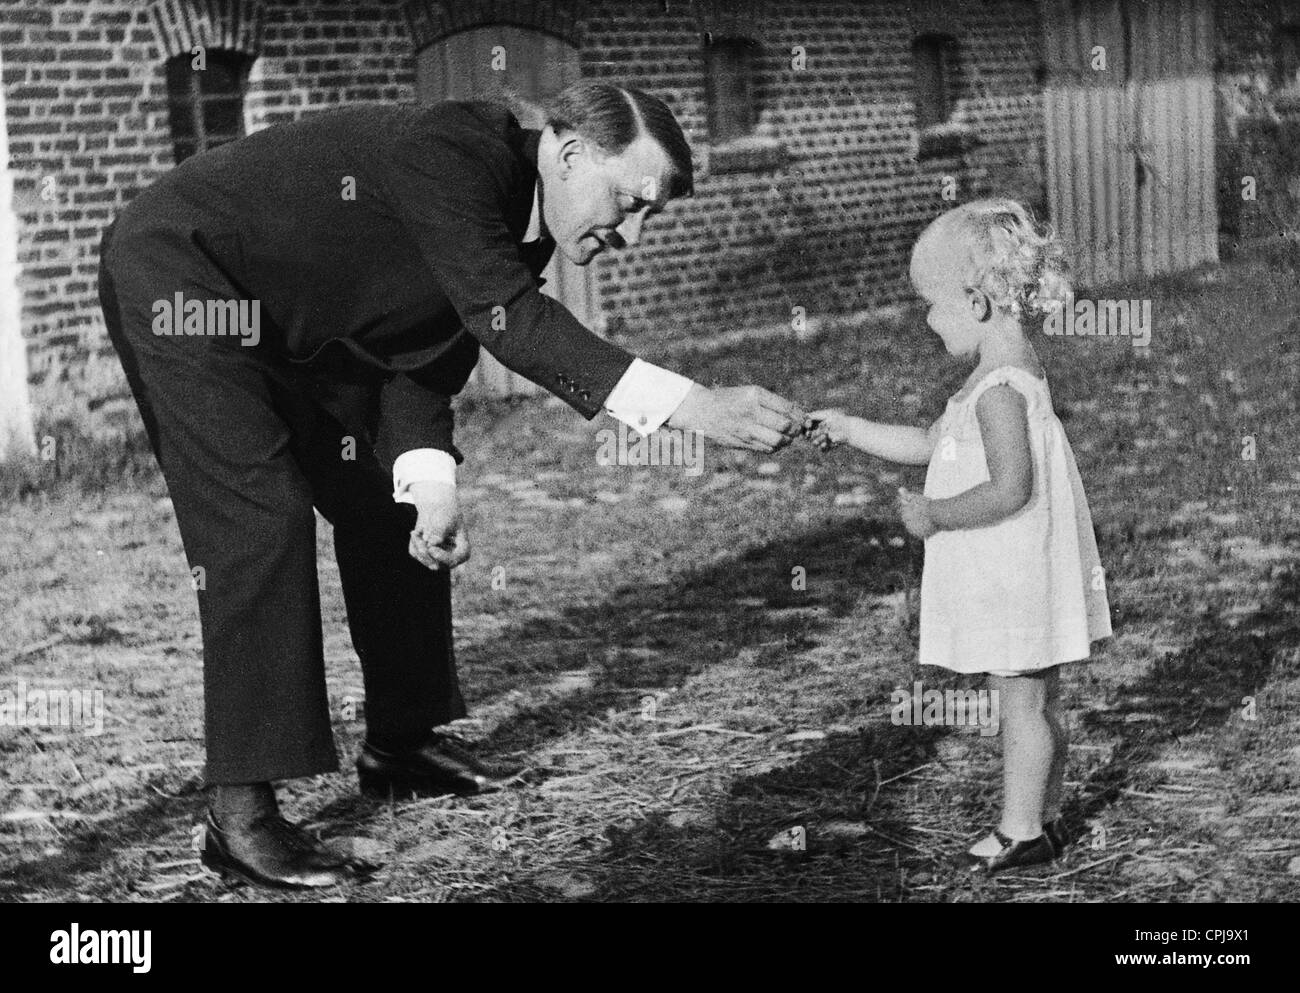 adolf hitler the child New jersey only bans names that include obscenities, numerals, or symbols, so  the campbells were totally in the clear when naming their children adolf hitler.